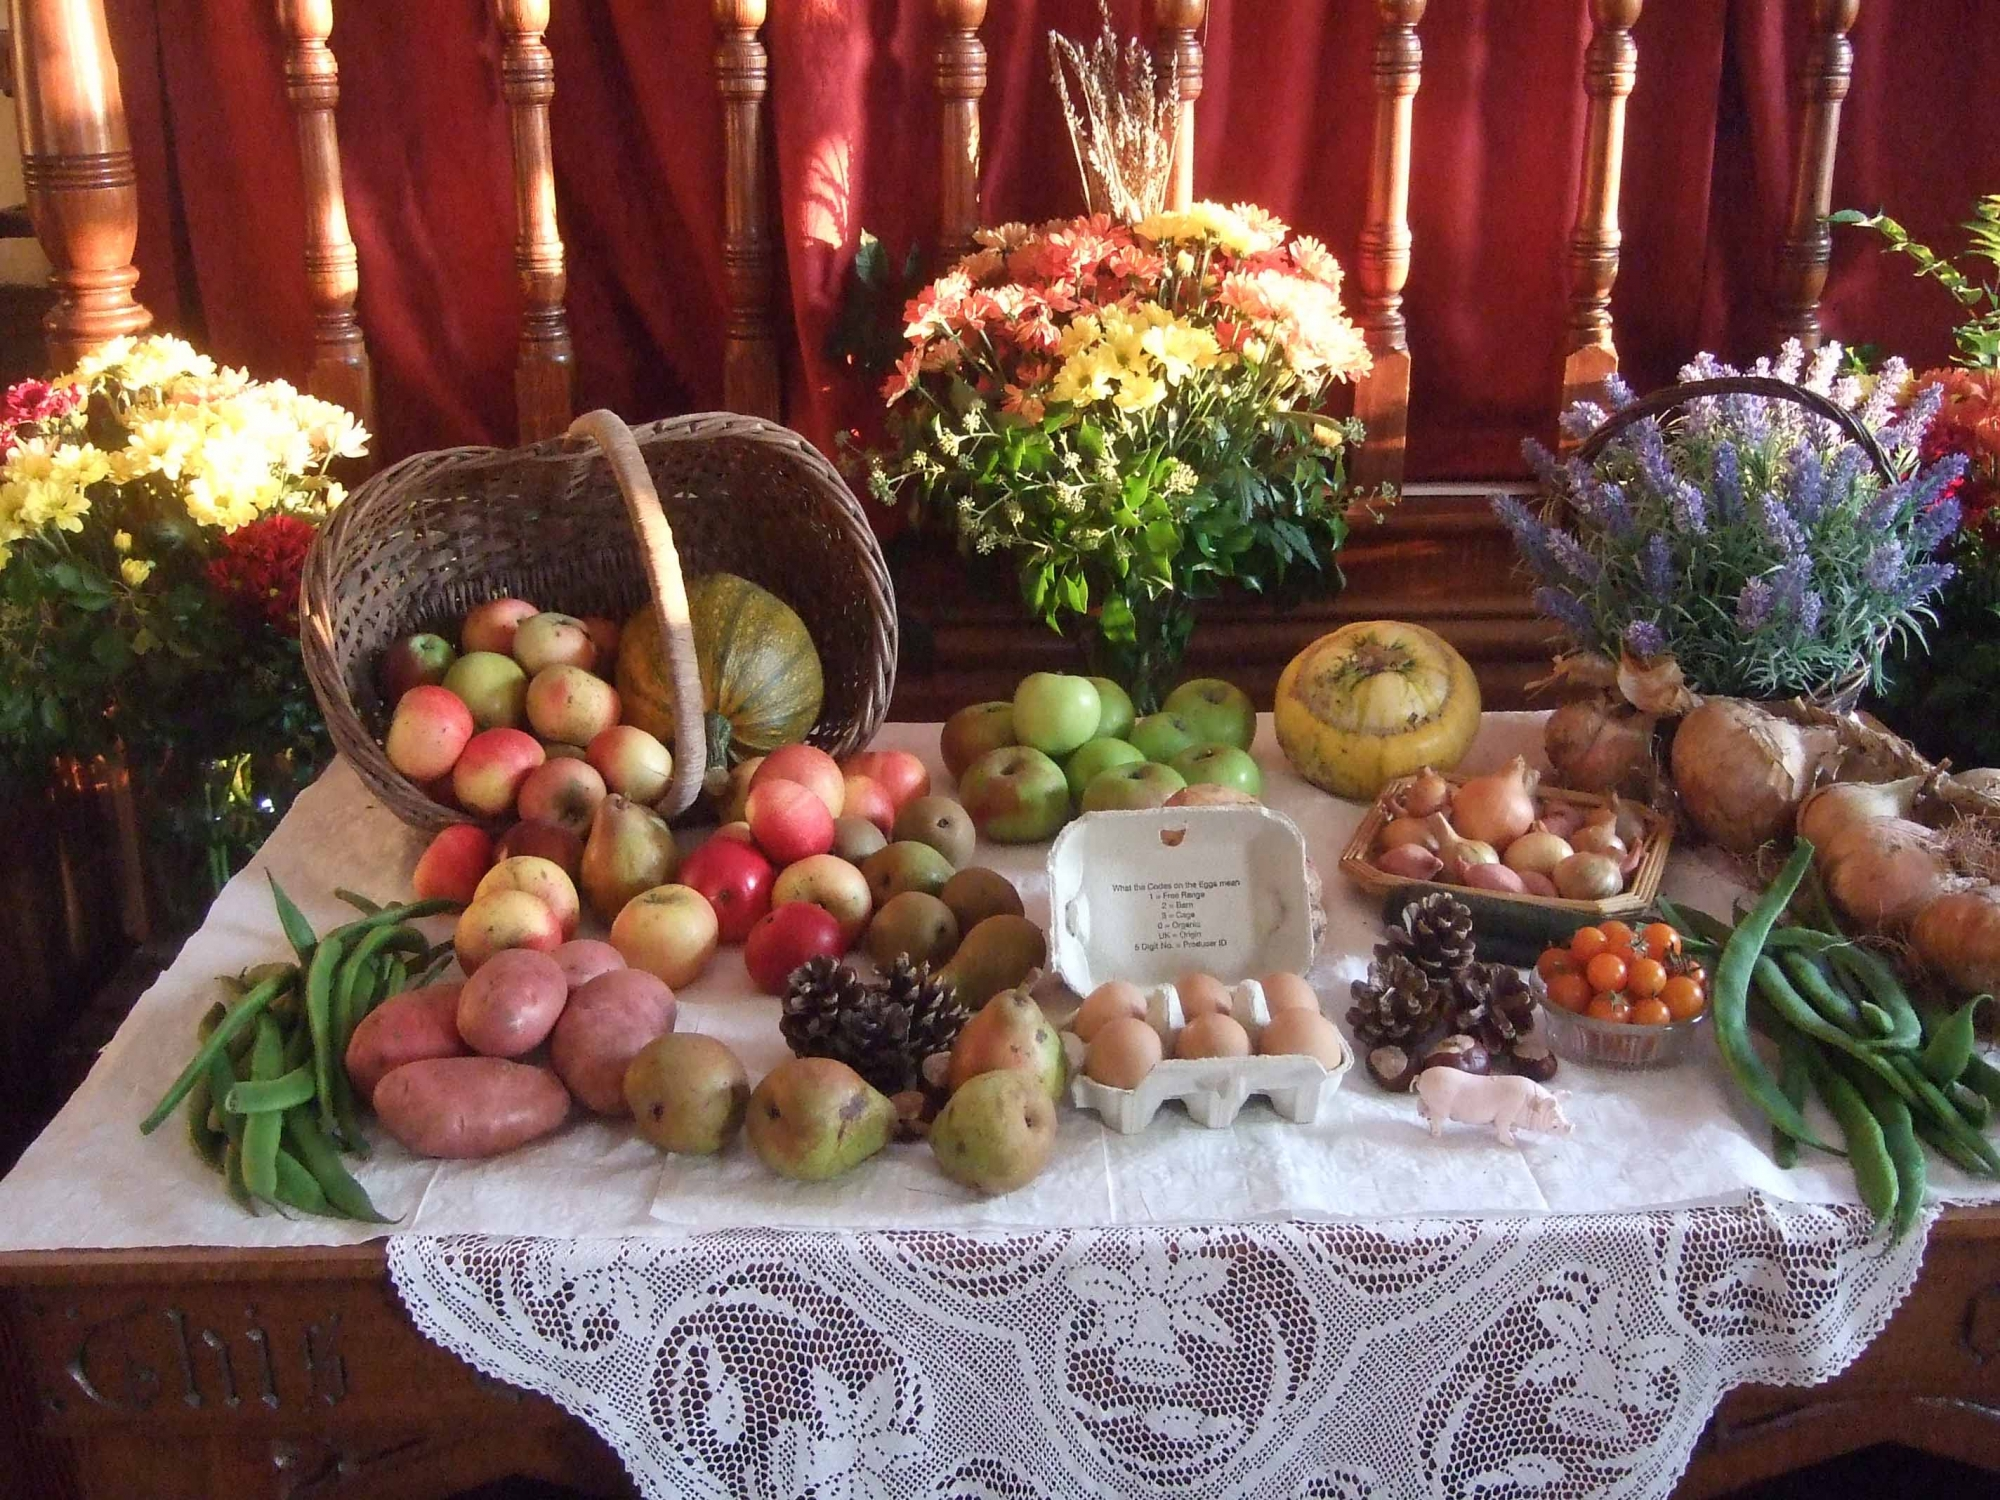 Harvest festival table